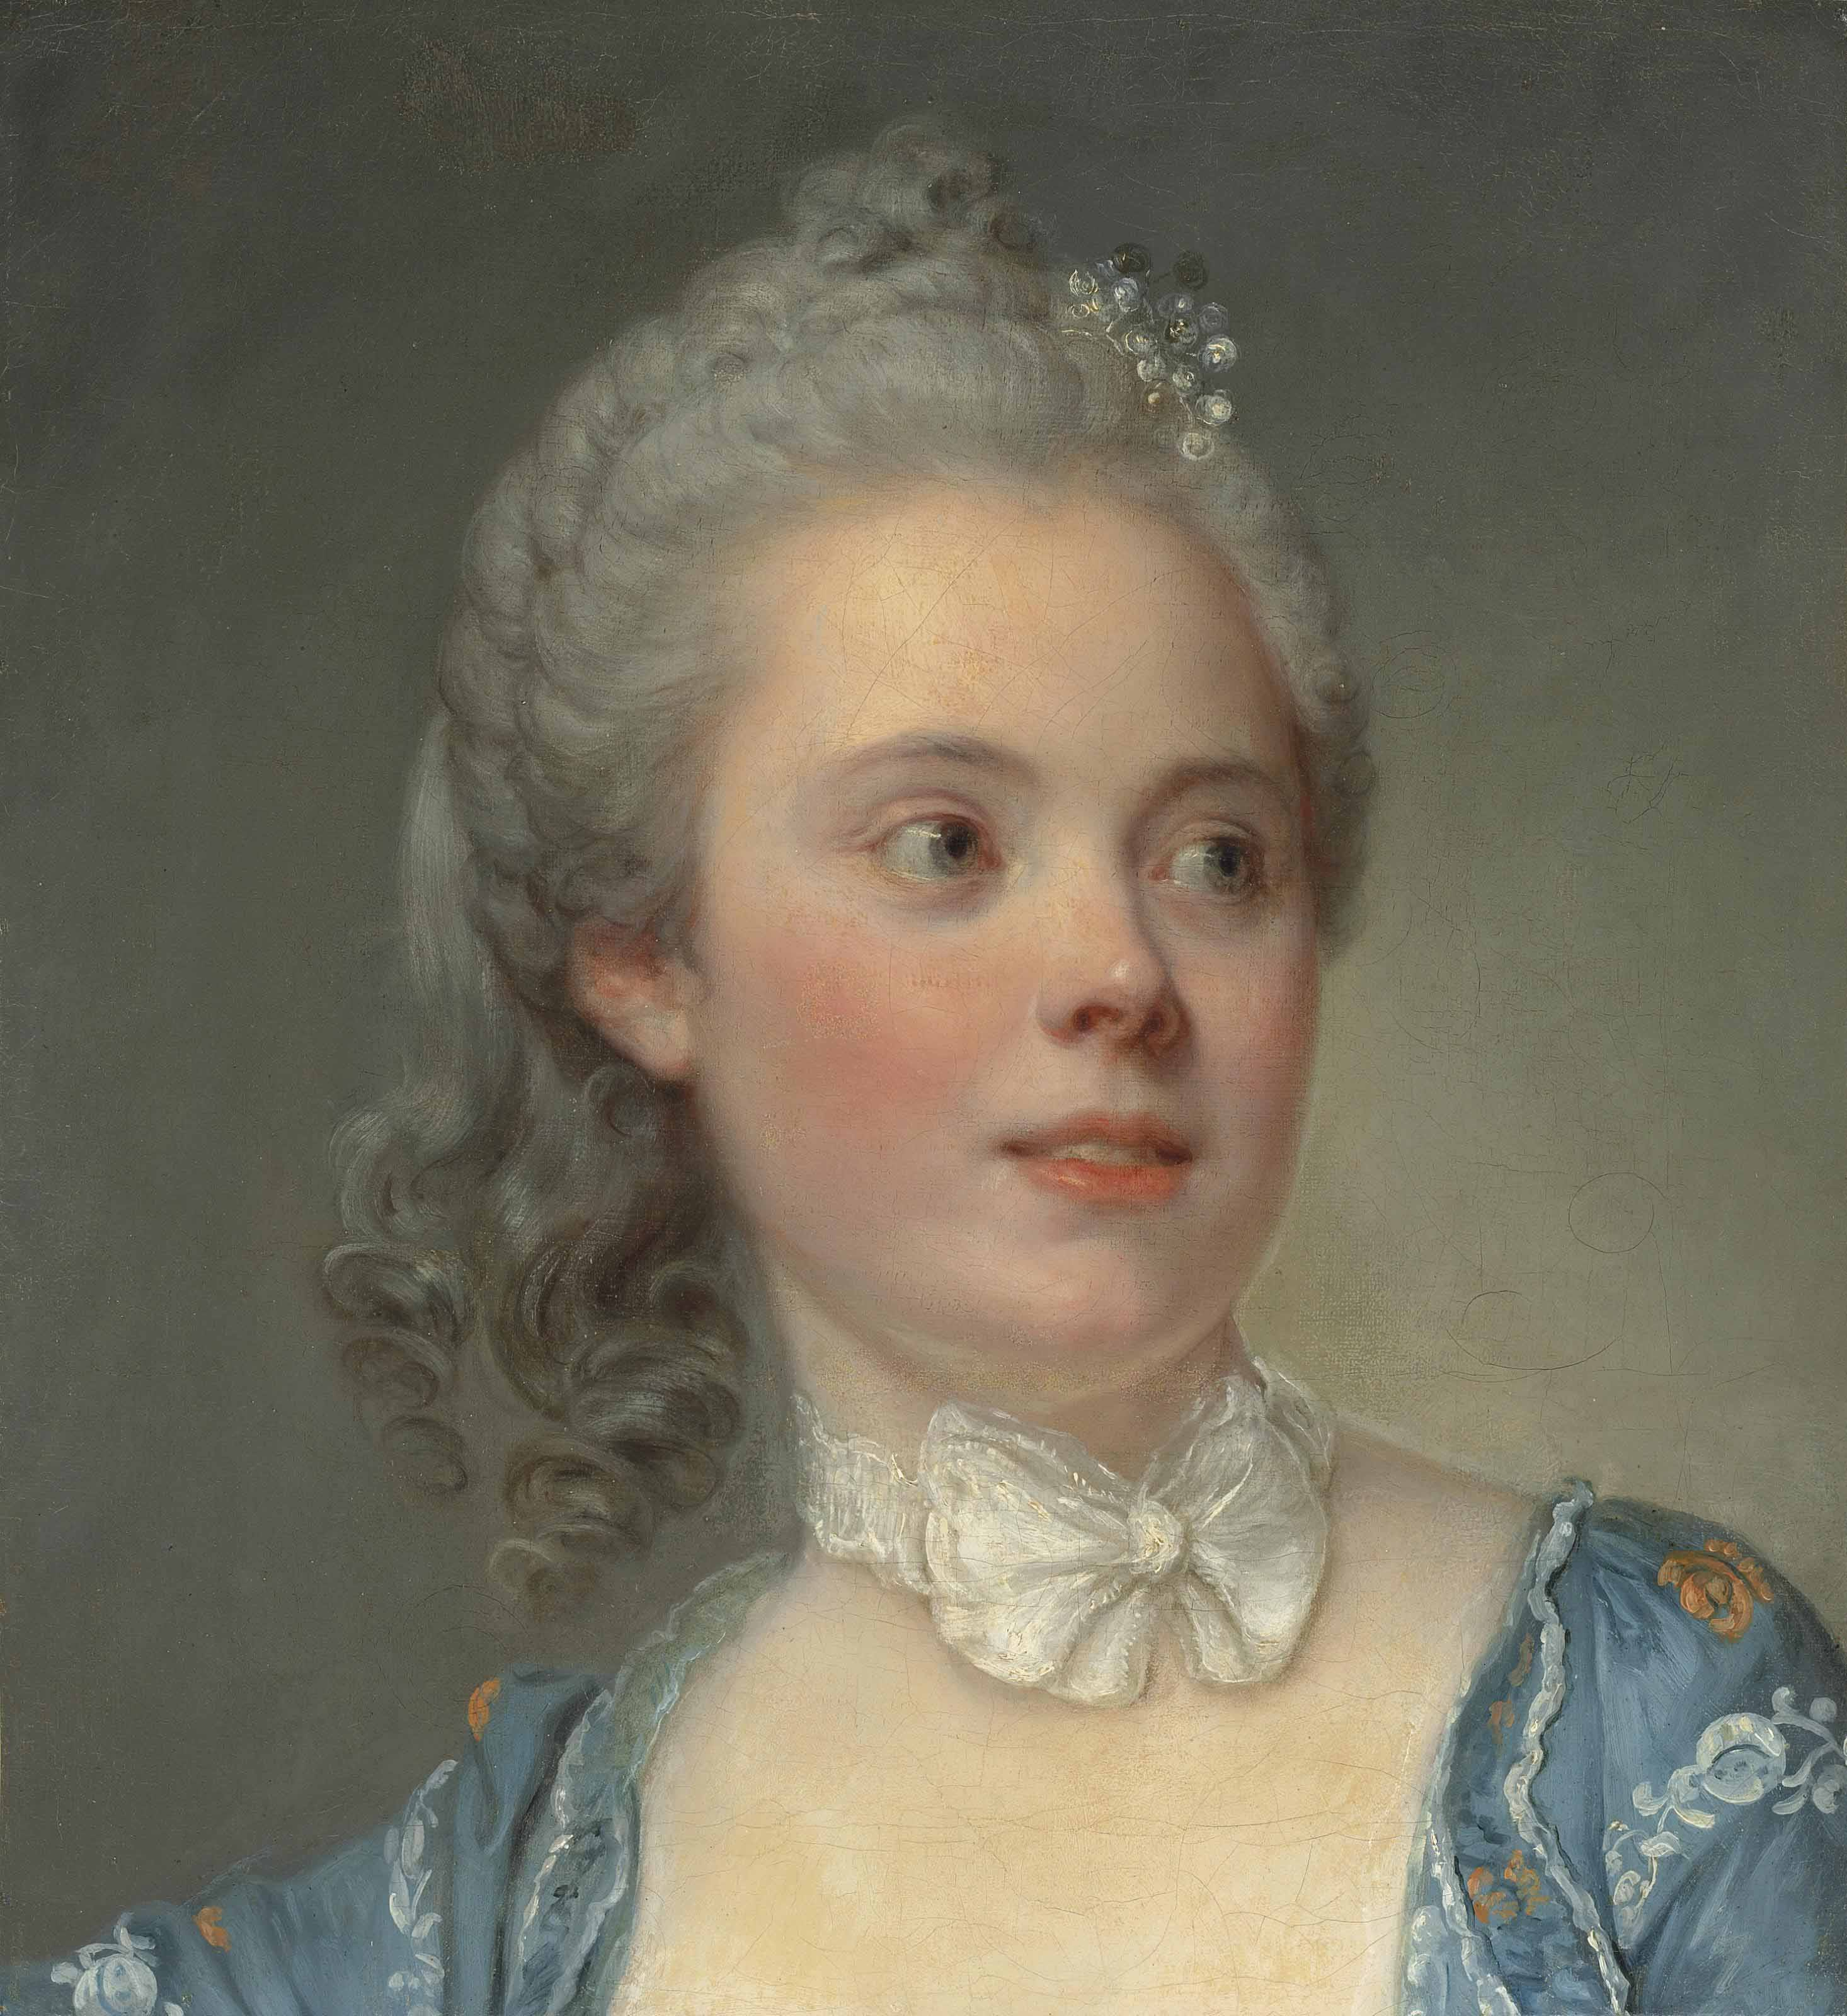 Portrait of a lady, bust-length, in an embroidered blue dress with a white lace ribbon tied in a bow at her neck